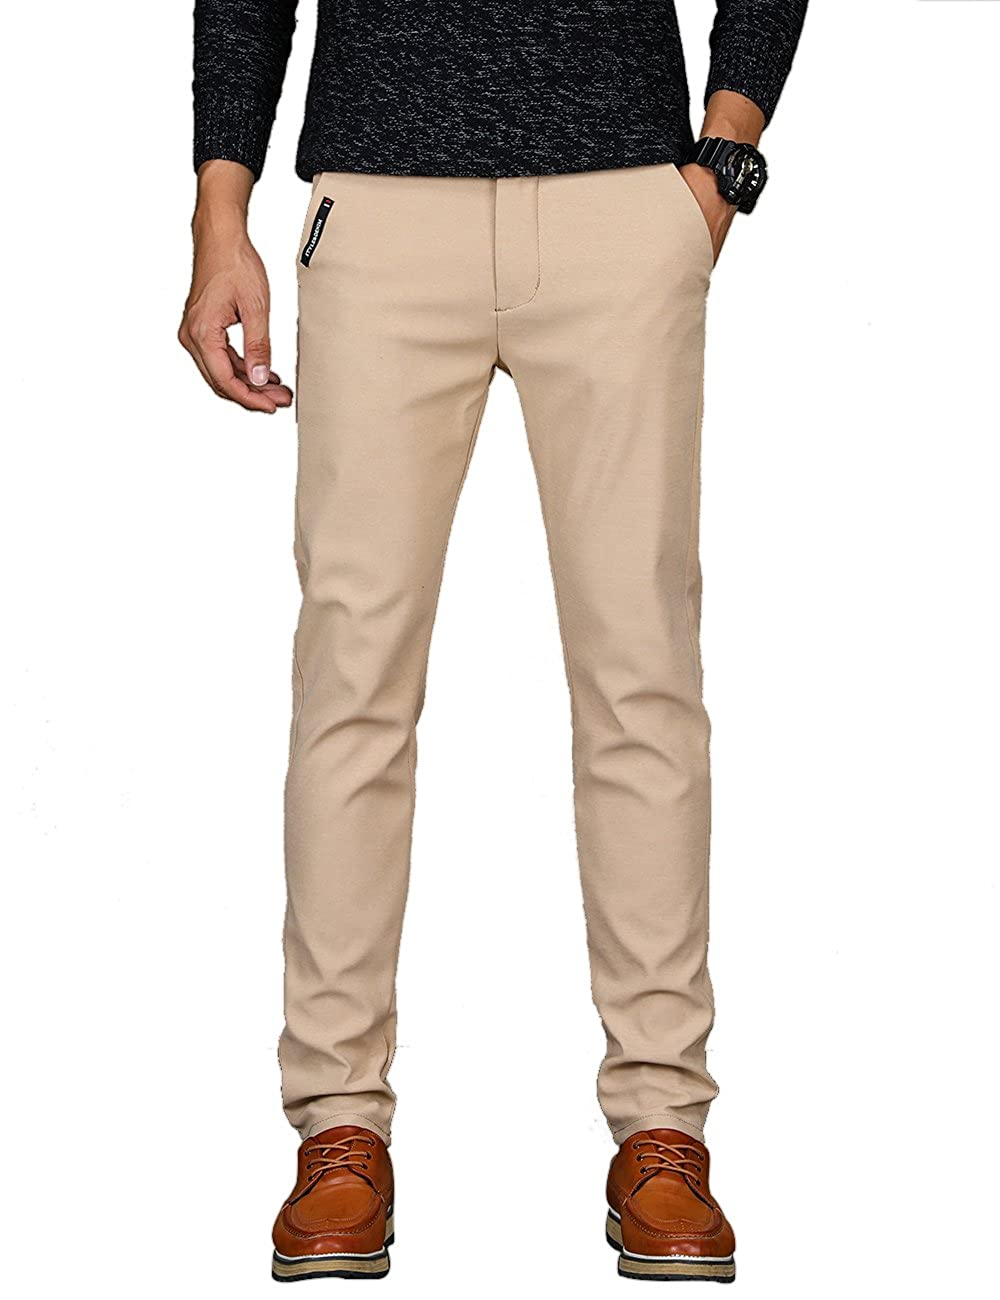 VEGORRS Men's Straight-Fit Work Wear Casual Pants